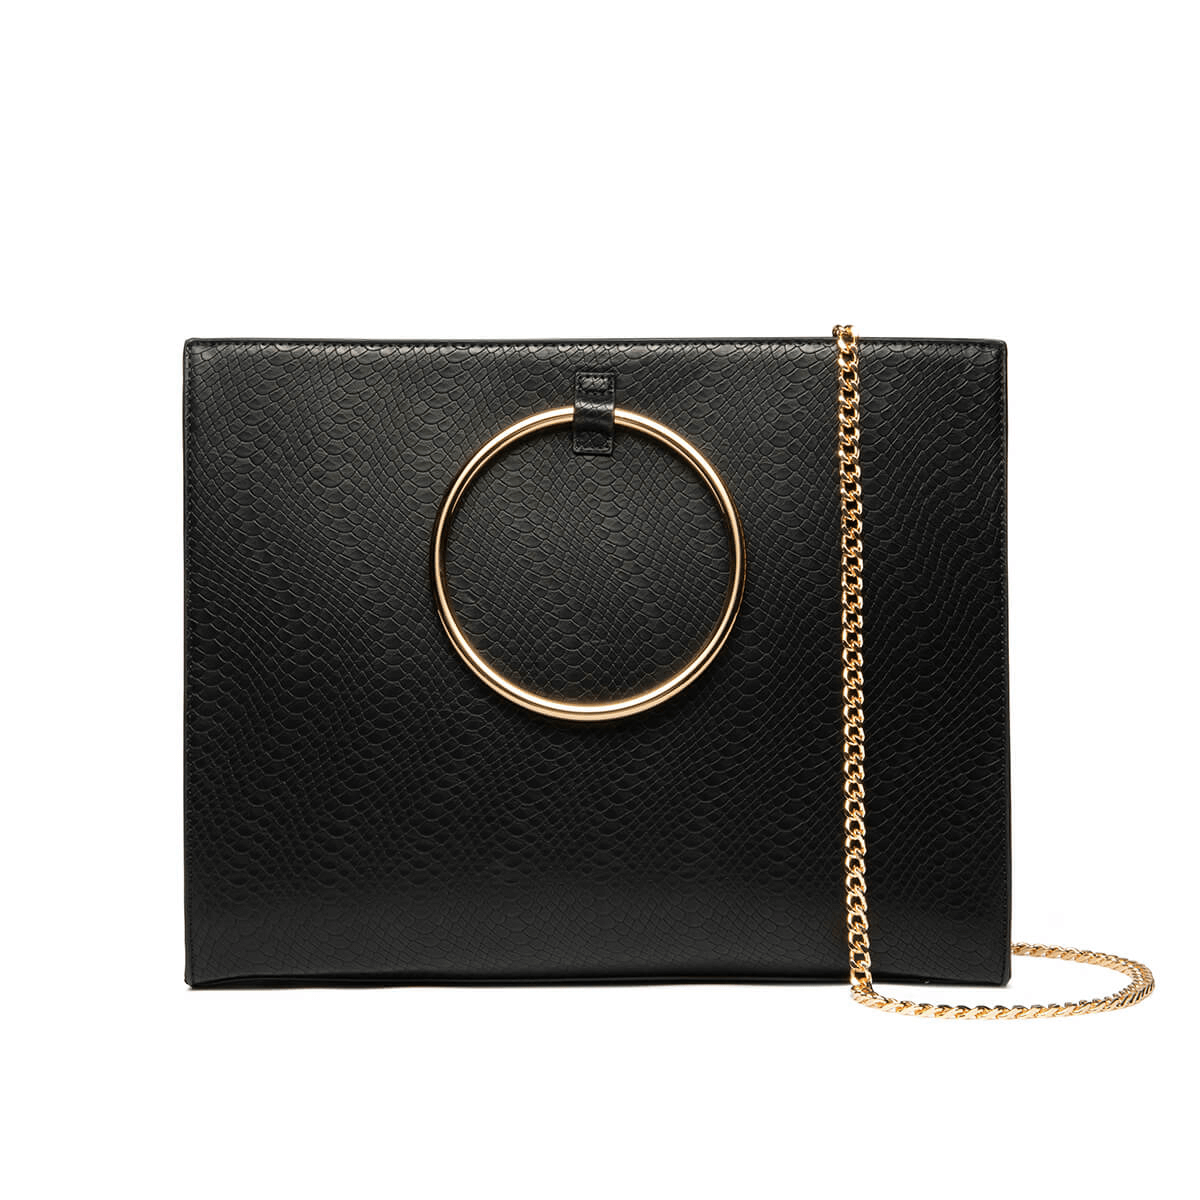 Grand Jet Black Moda Handbag (Gold)